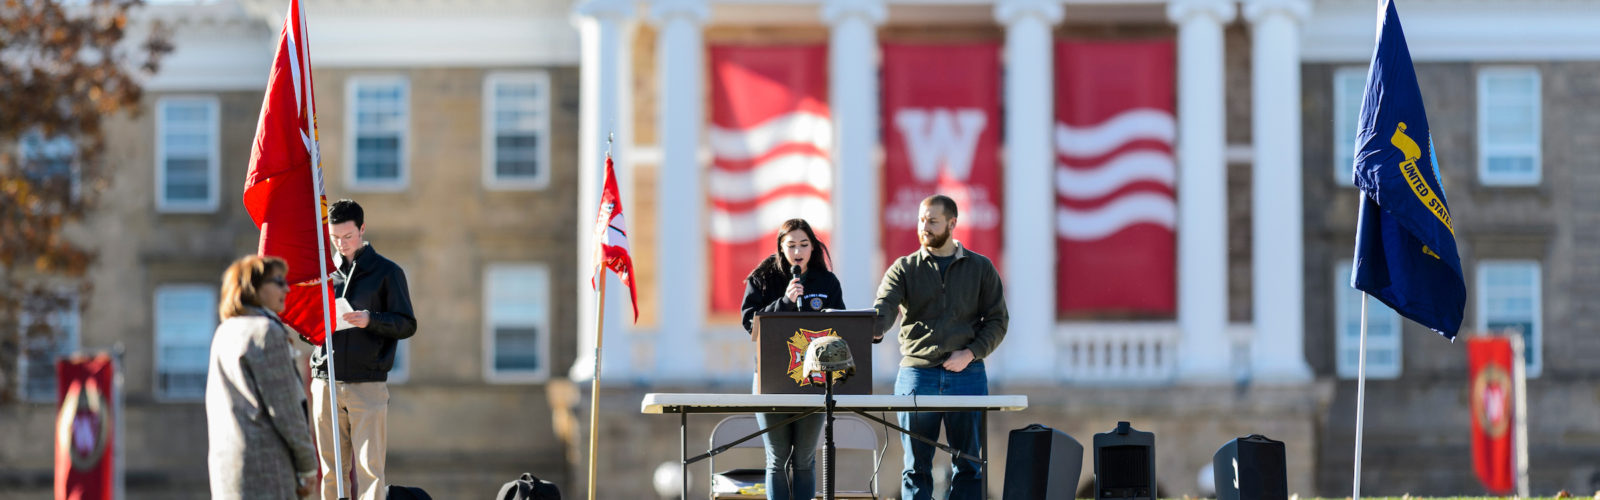 photo of students making a Memorial Day presentation on Bascom Hill